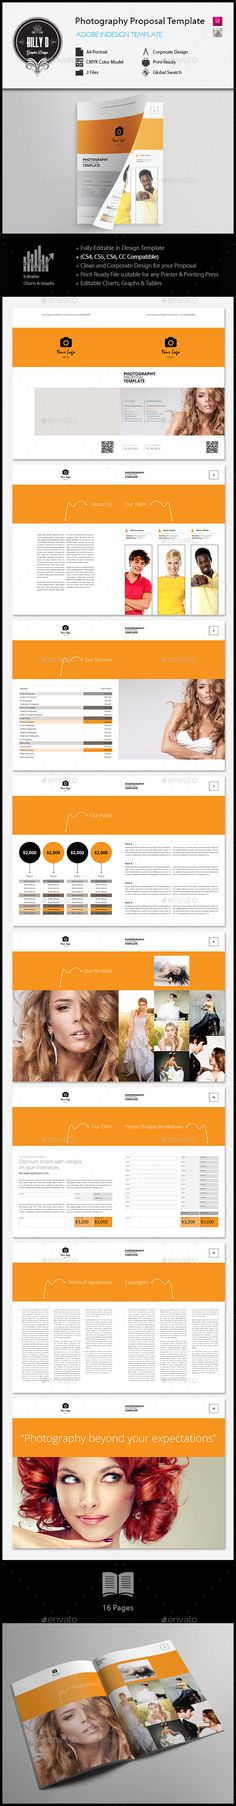 Web Design Proposal Template Proposal templates, Proposals and - what is in a design proposal